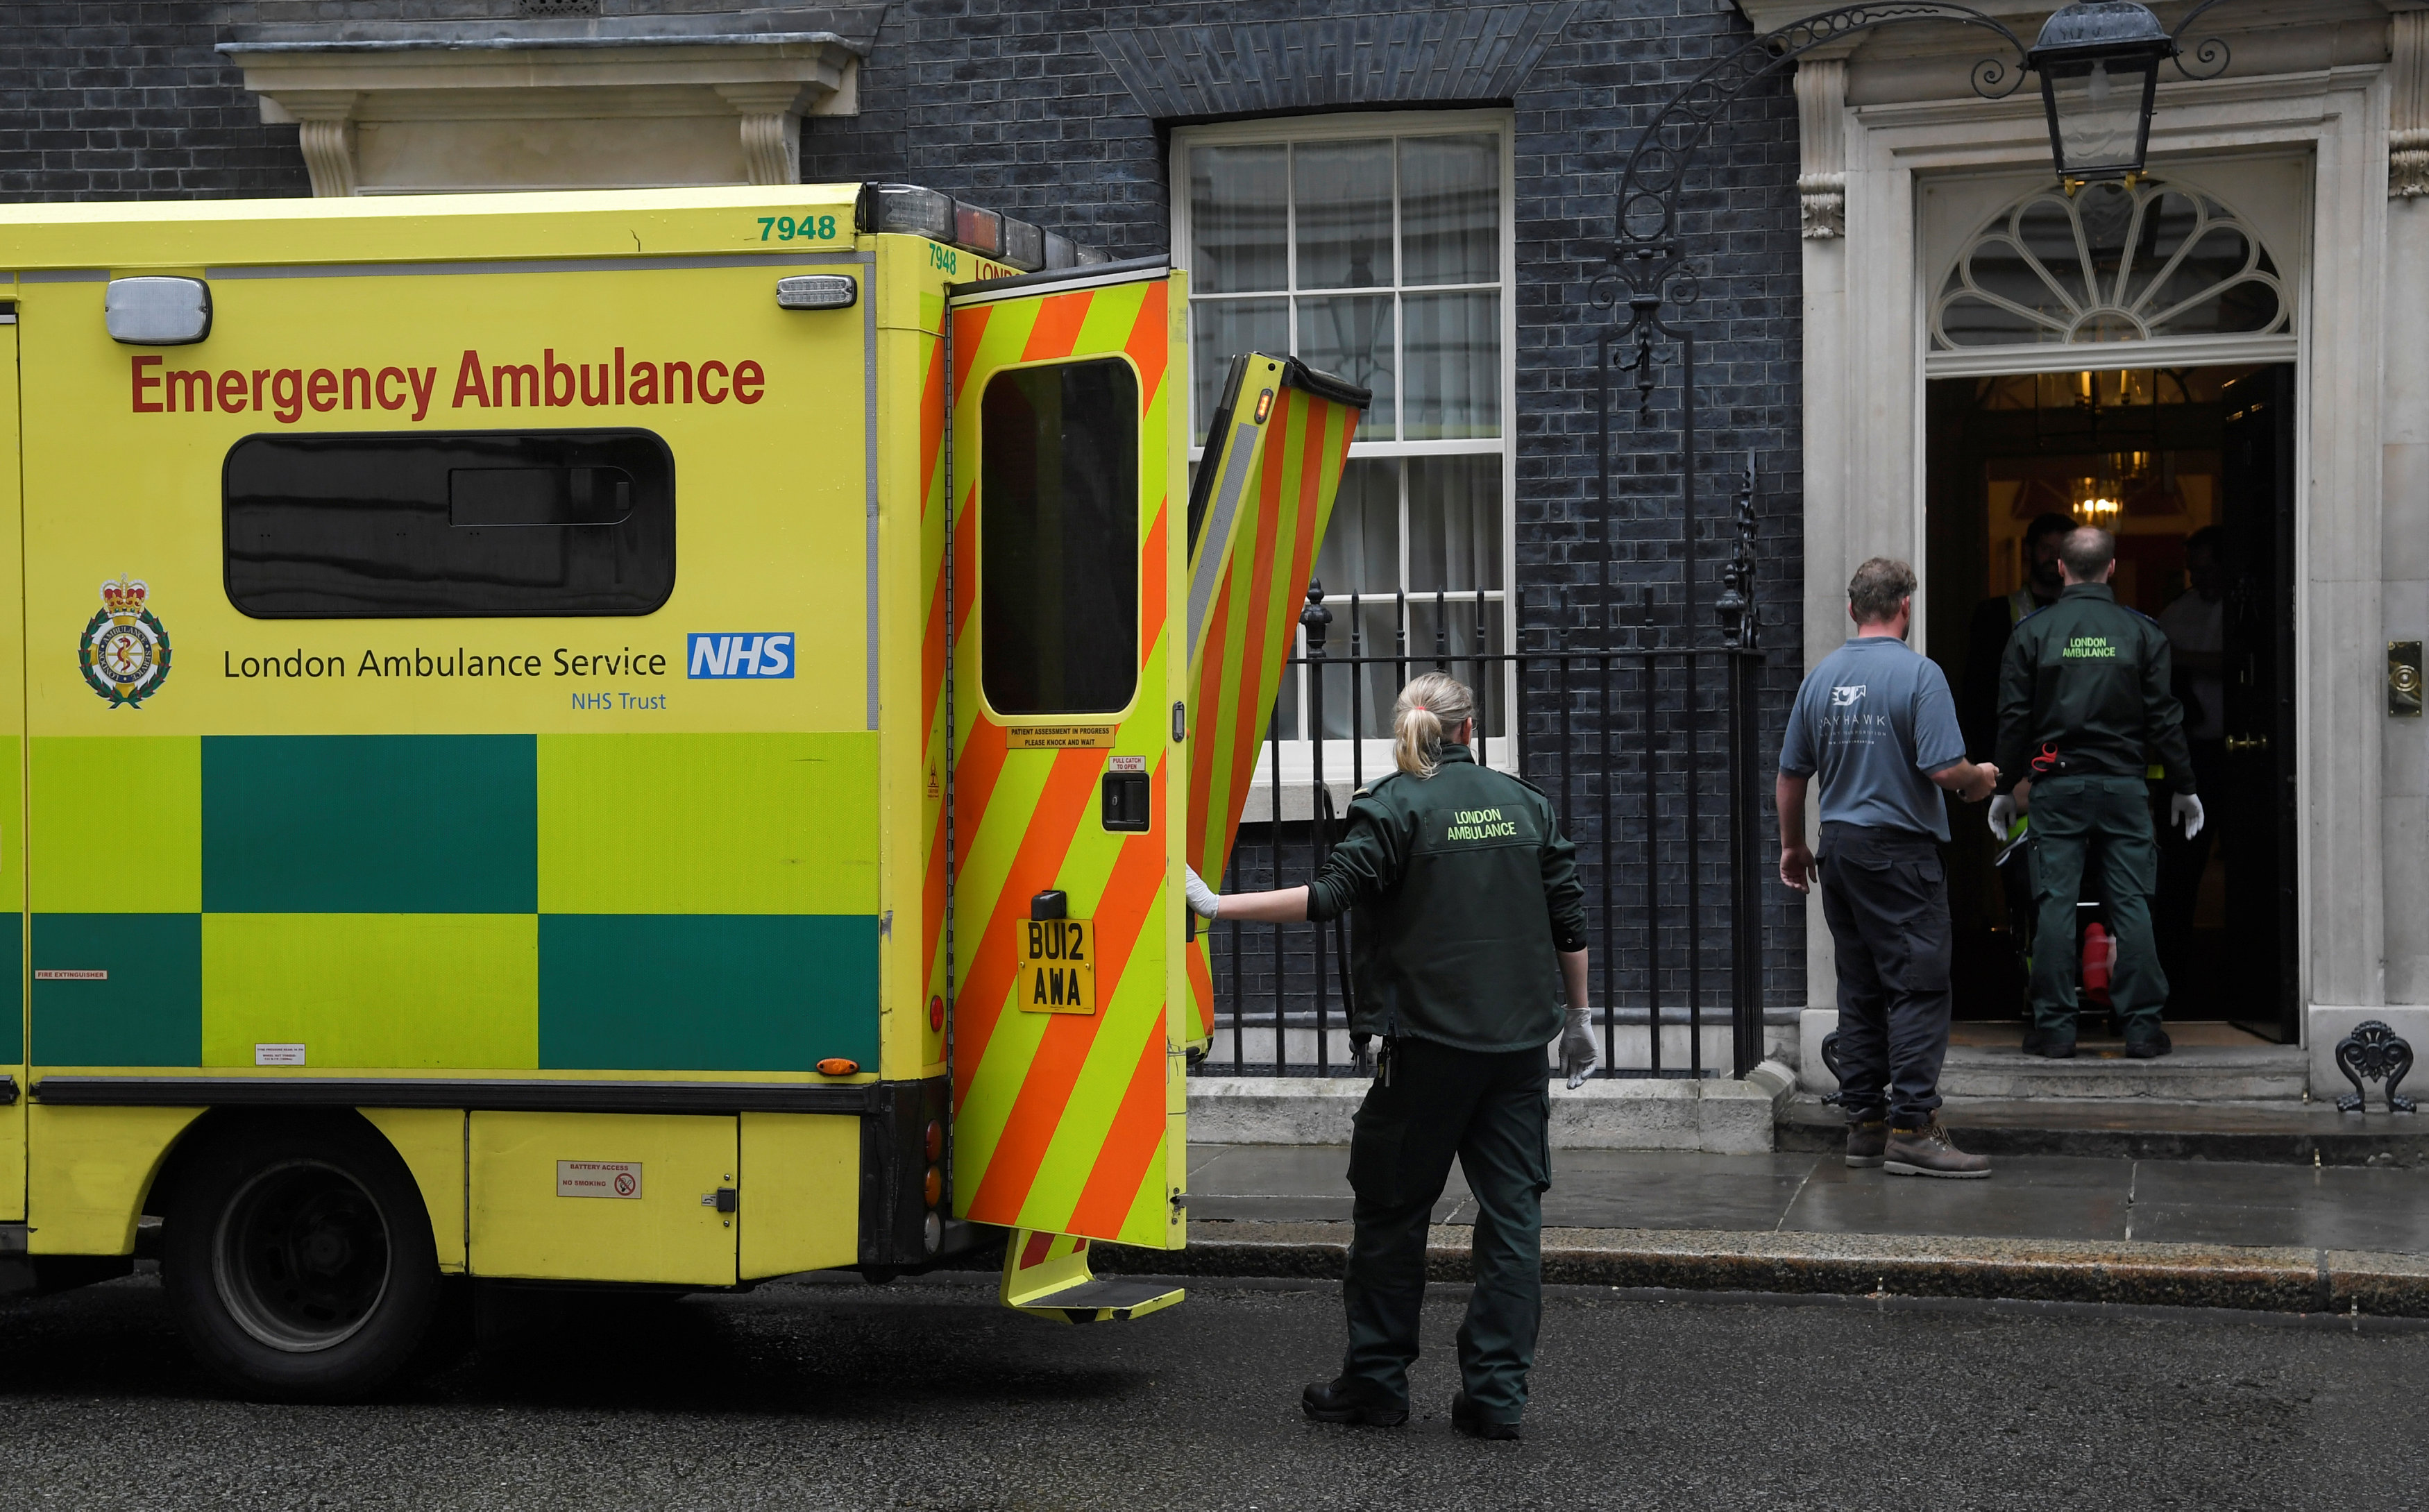 Paramedics carry a patient to an ambulance parked outside 10 Downing Street in London, Britain on May 15, 2017. (REUTERS/Toby Melville)